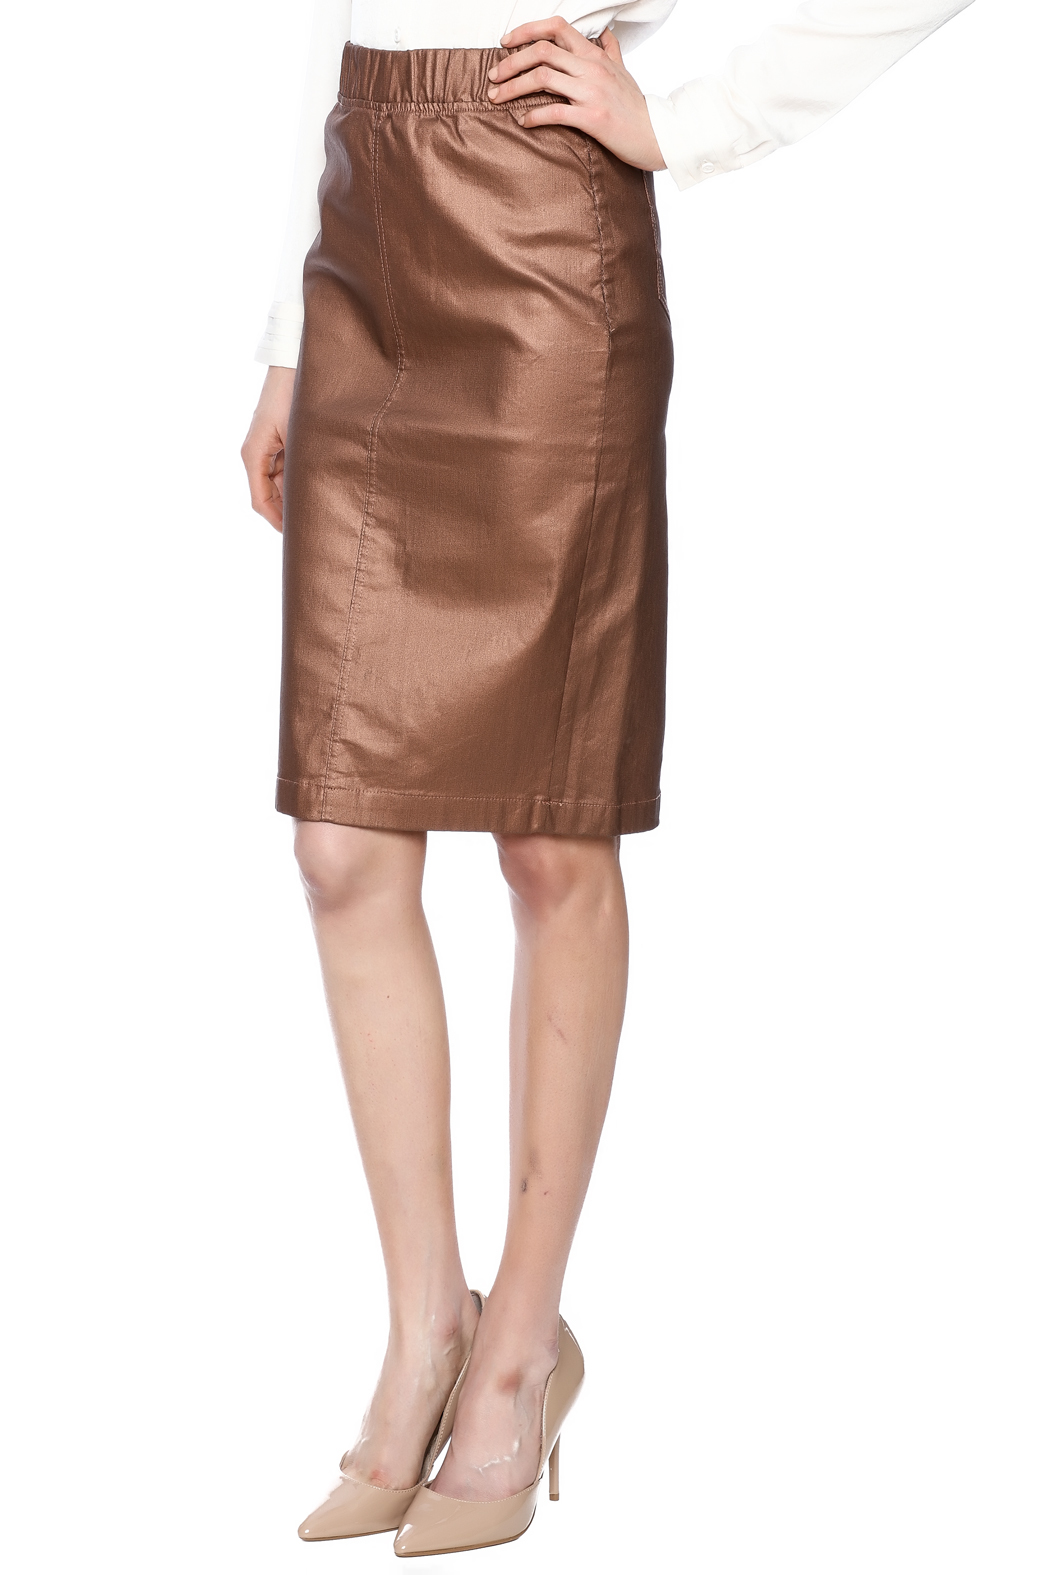 Kikiriki Metallic Jean Pencil Skirt - Main Image